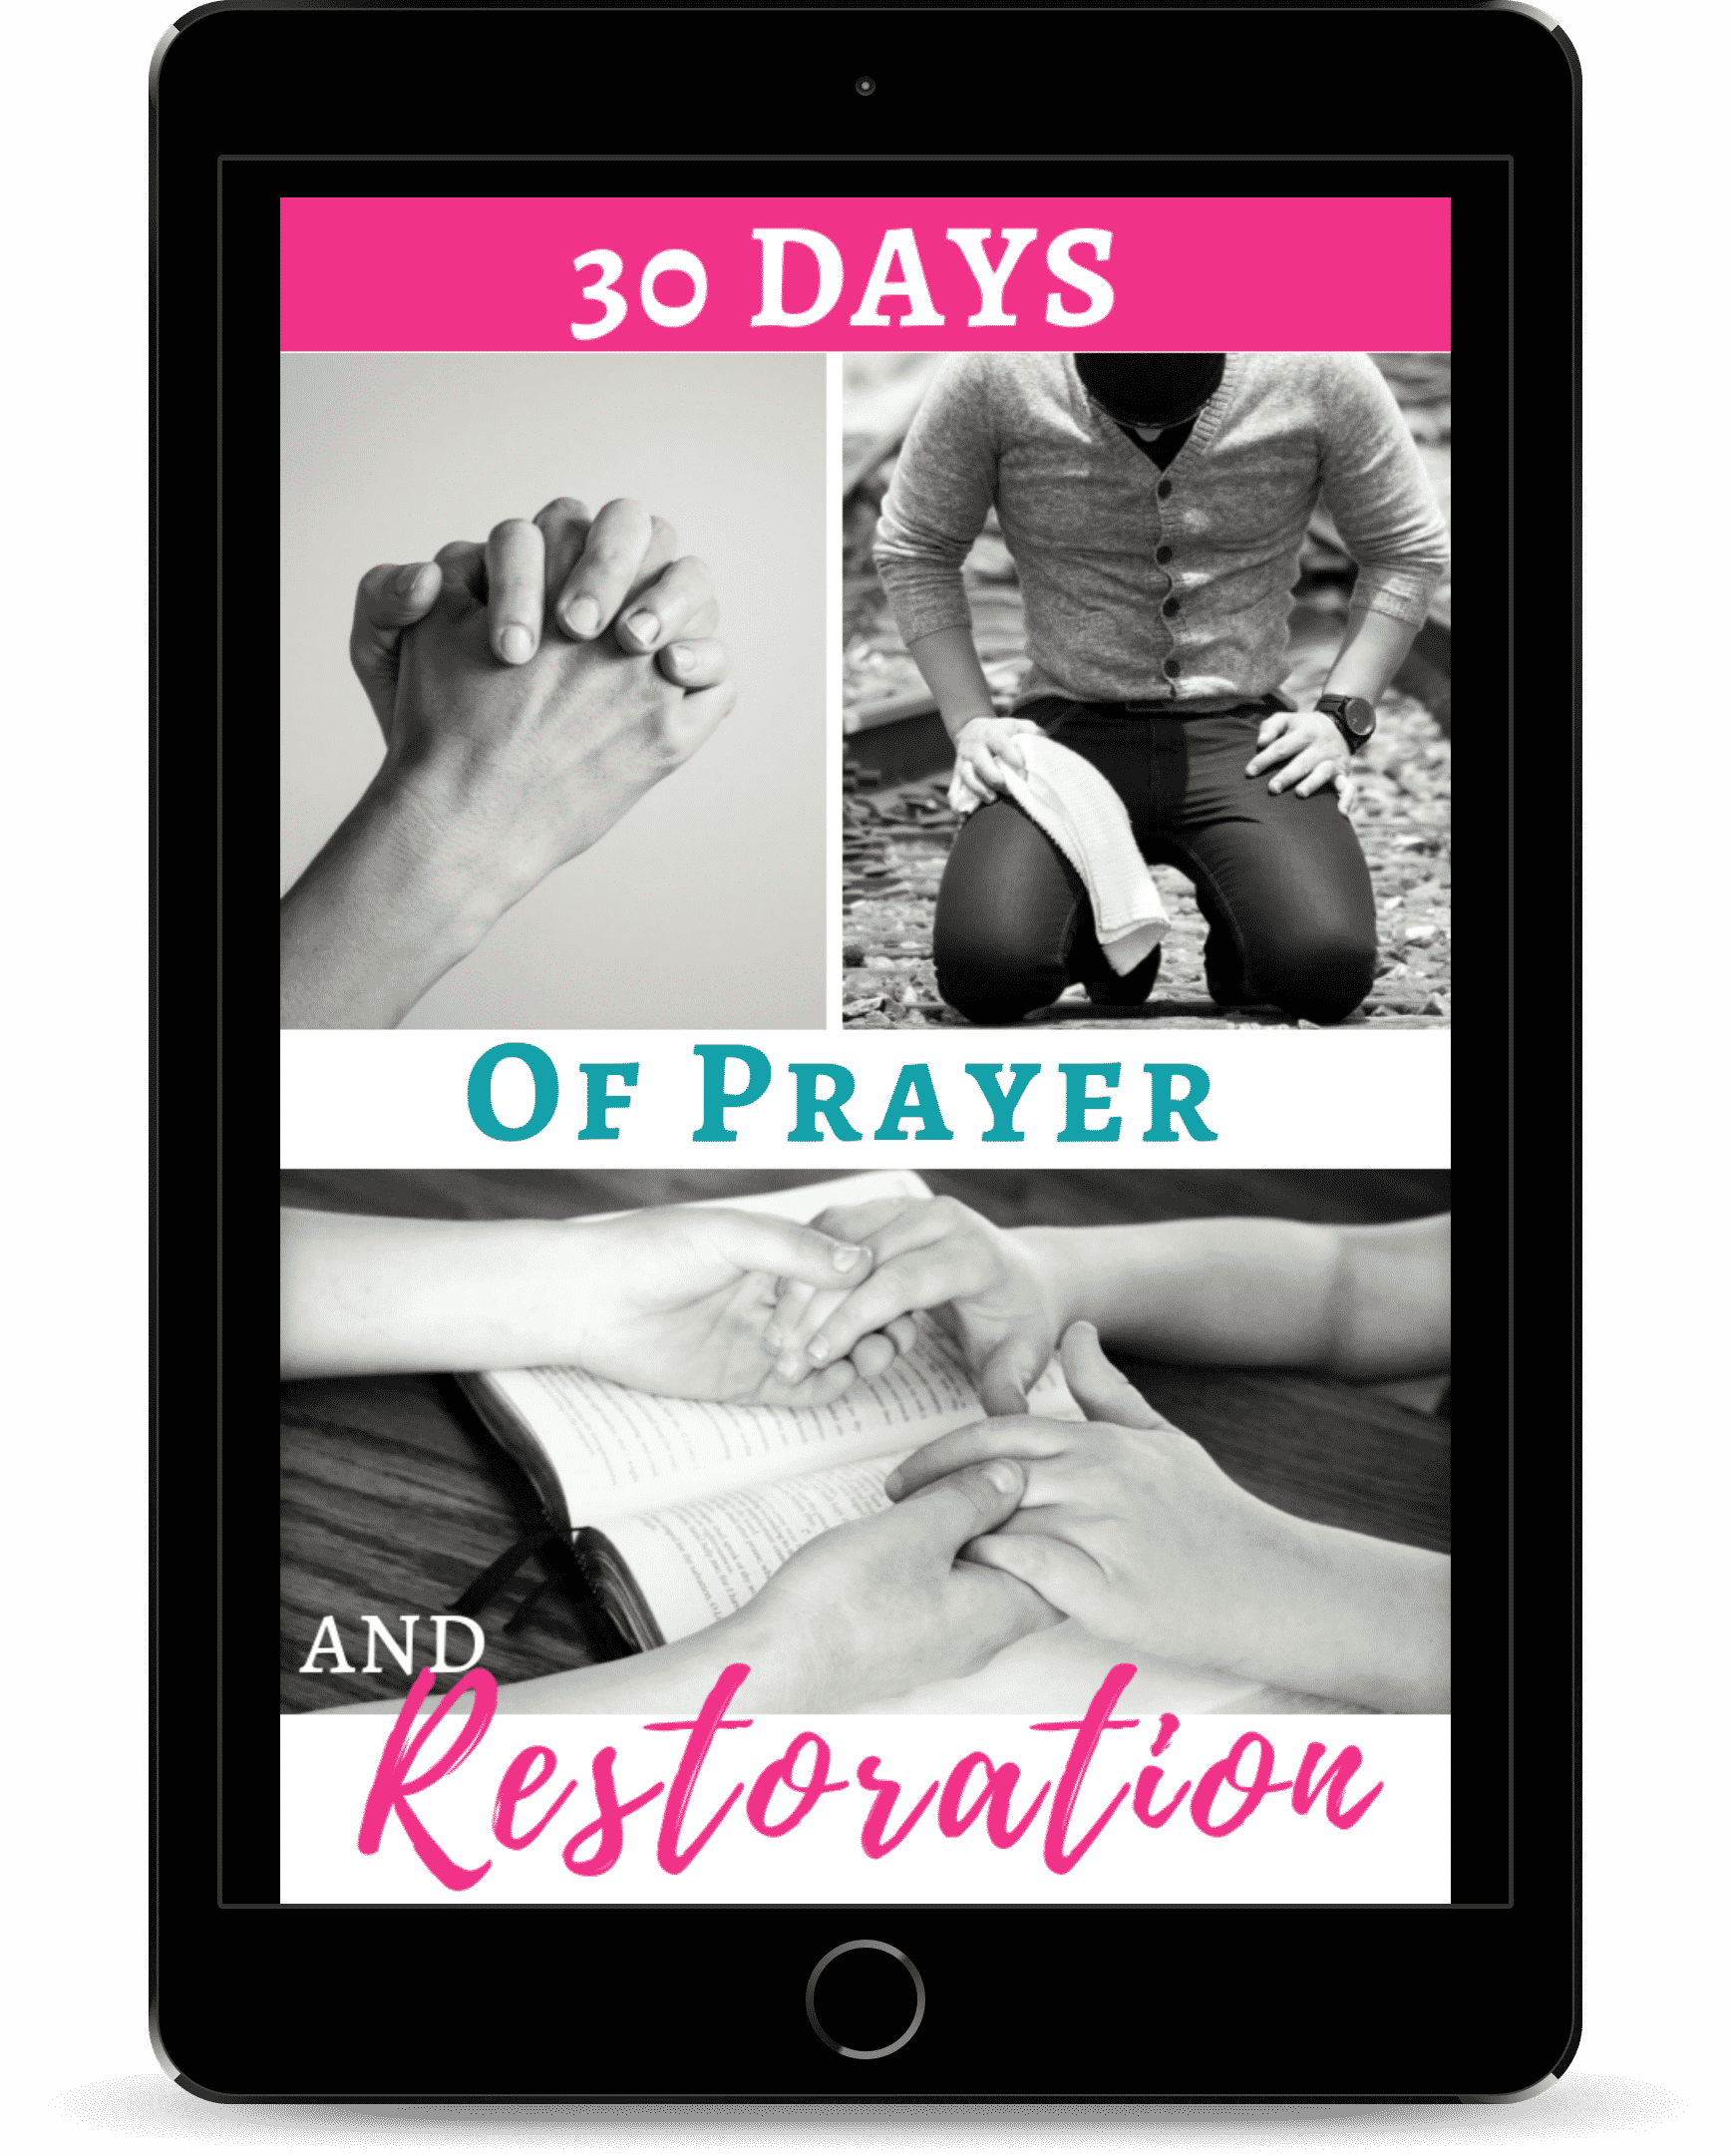 30 days of prayer and resotoration email challenge.  Start Restoring your marriage